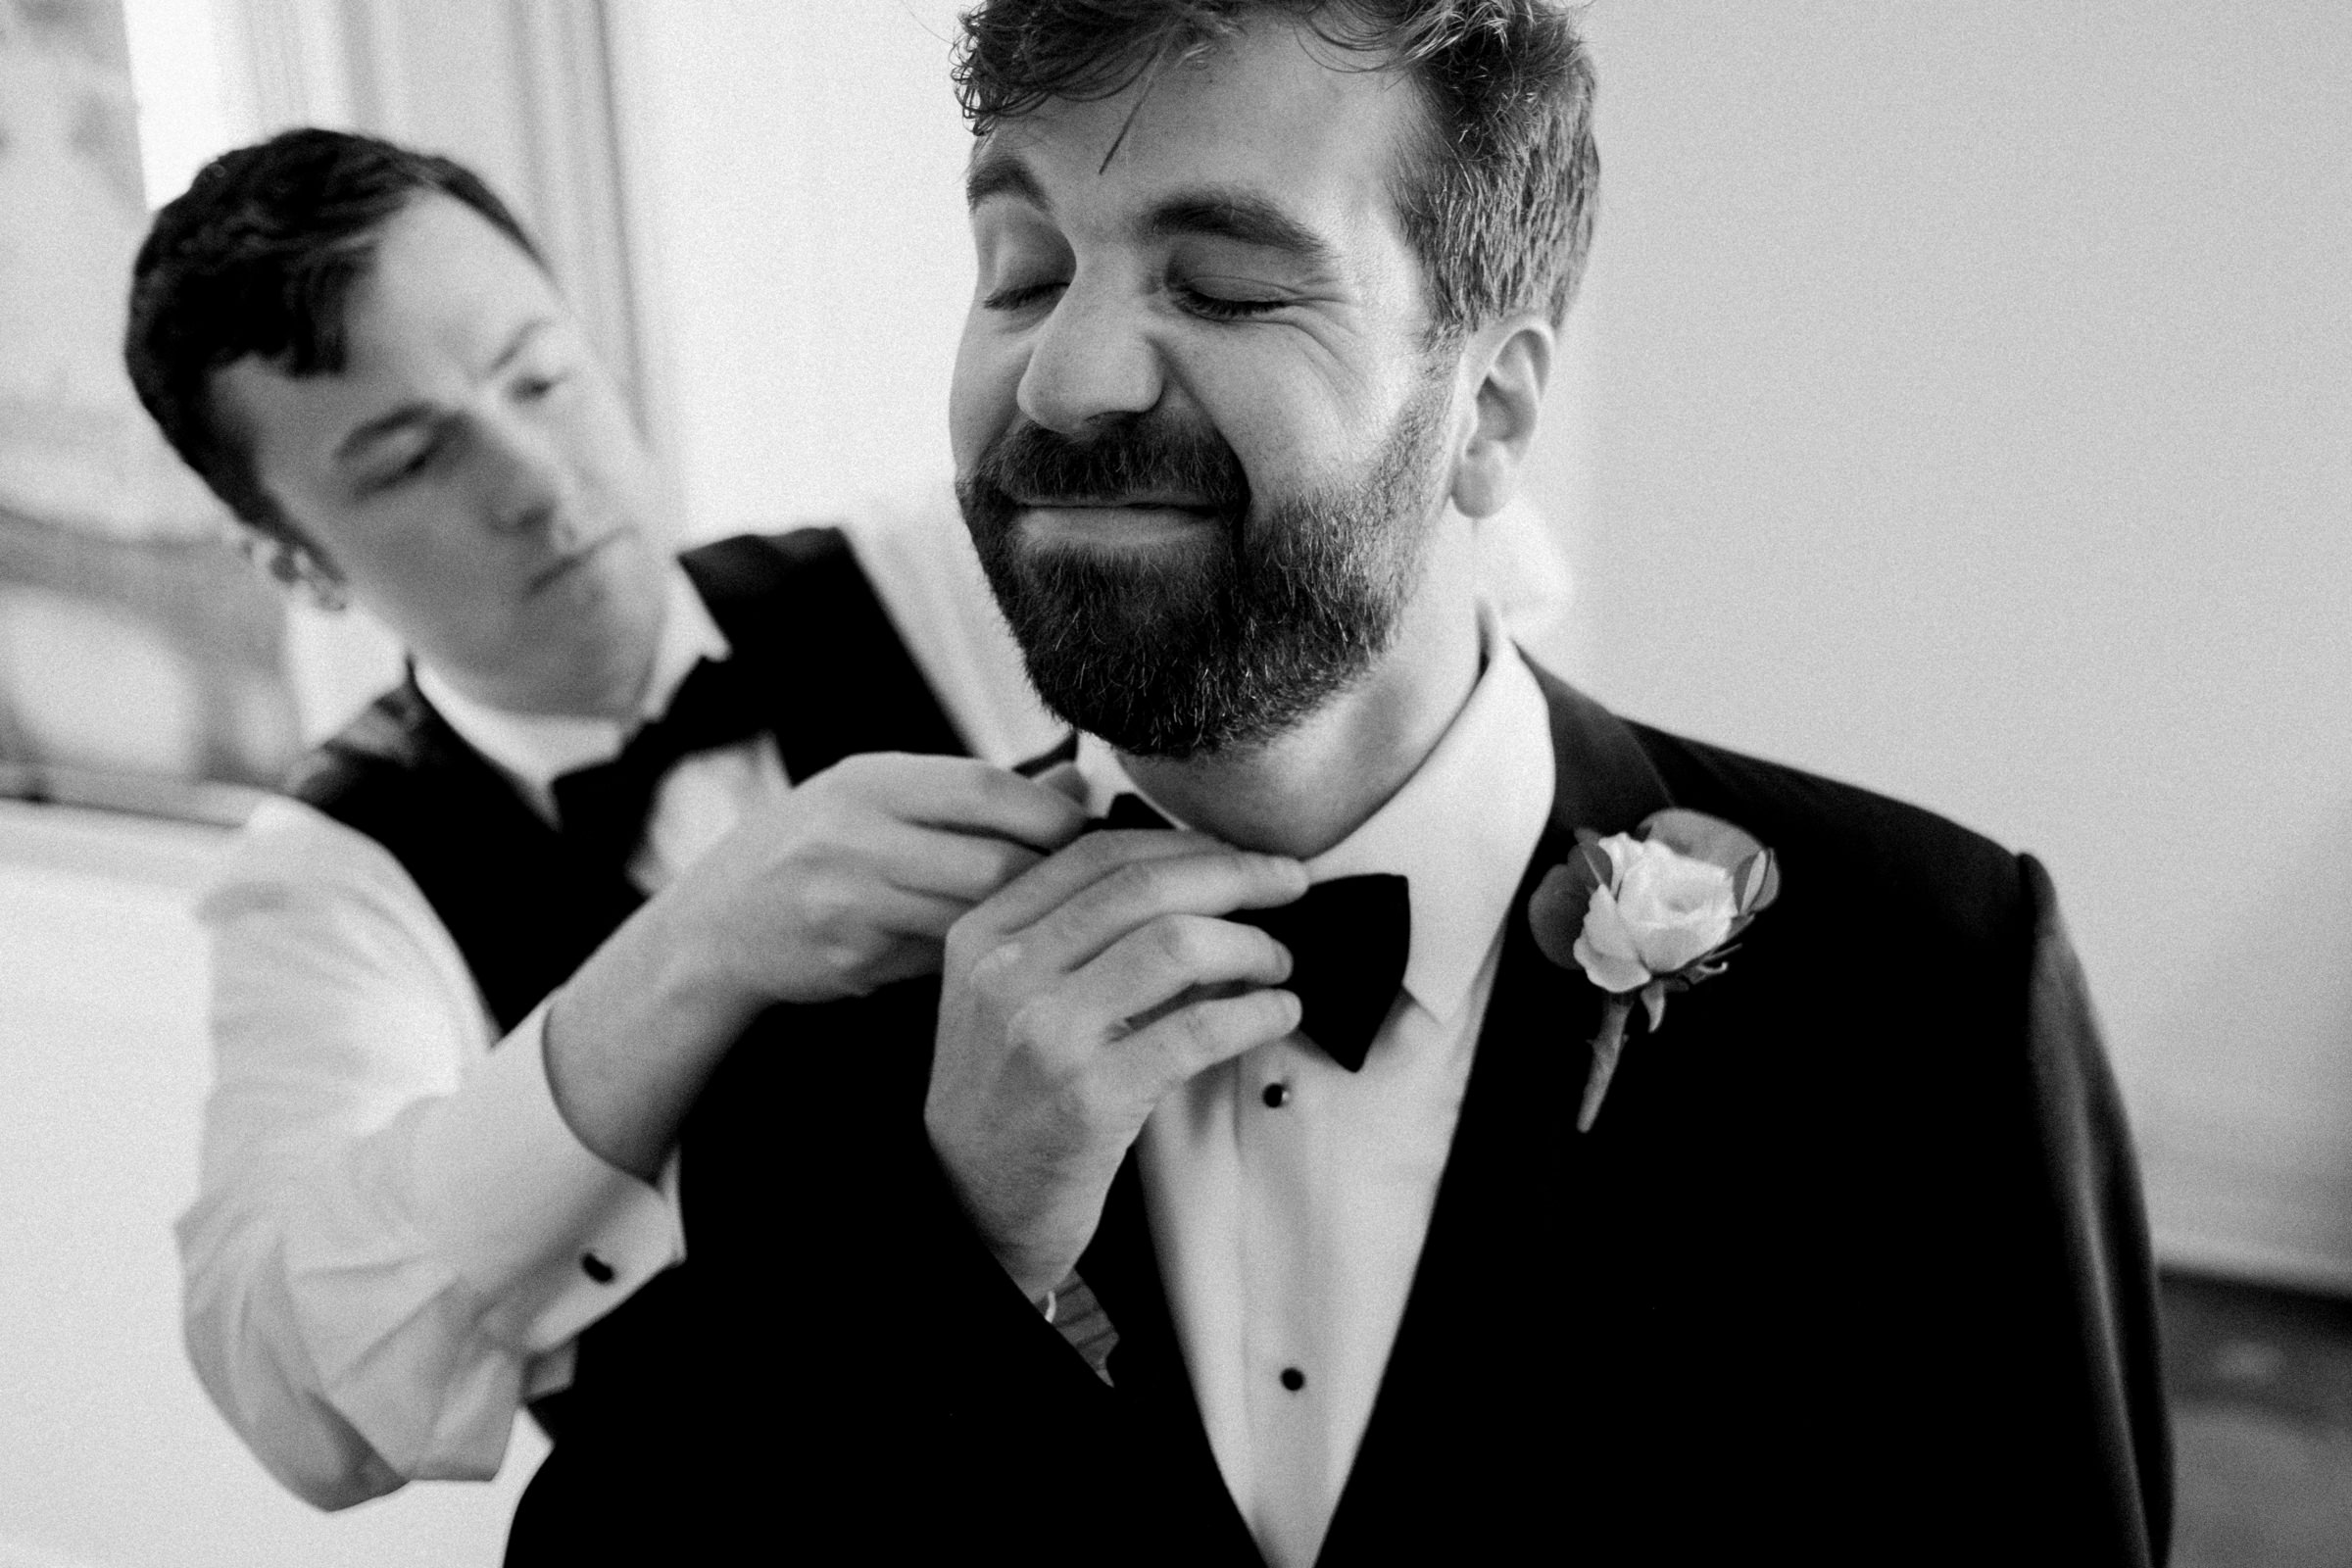 groomsman helping groom with bowtie-new orleans-austin-houston-wedding- photo by Dark Roux